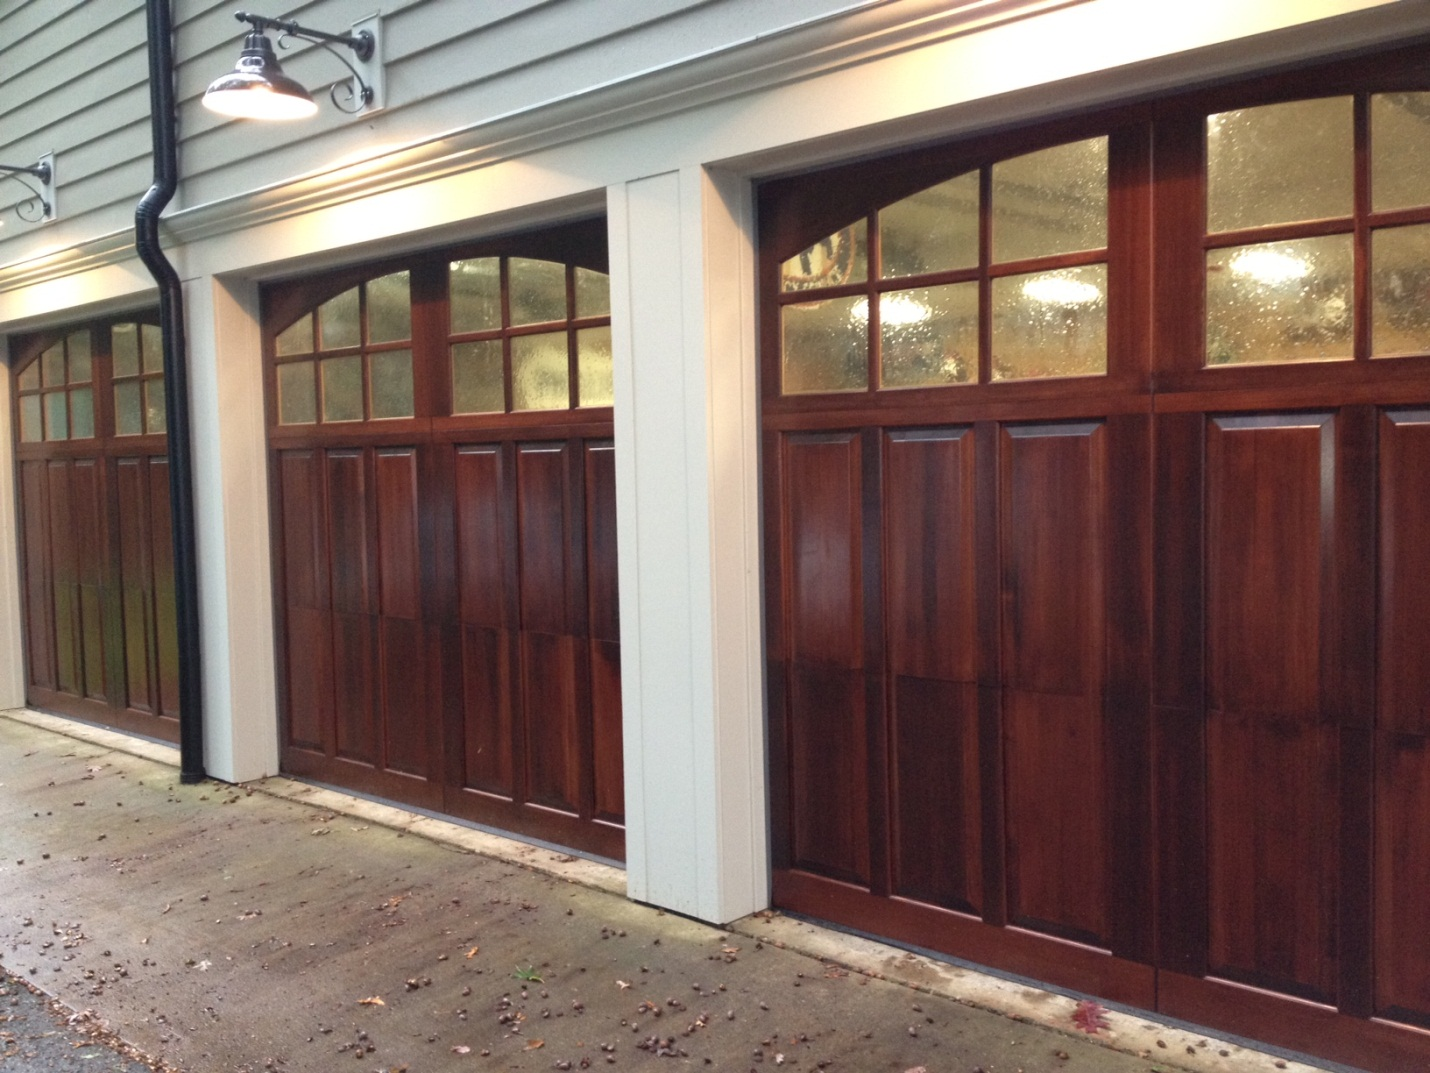 1073 #876B44 Contemporary Dalton Two Car Garage Door With Hard Wood Plus Windows On  pic Carriage Style Garage Doors Costco 38111430